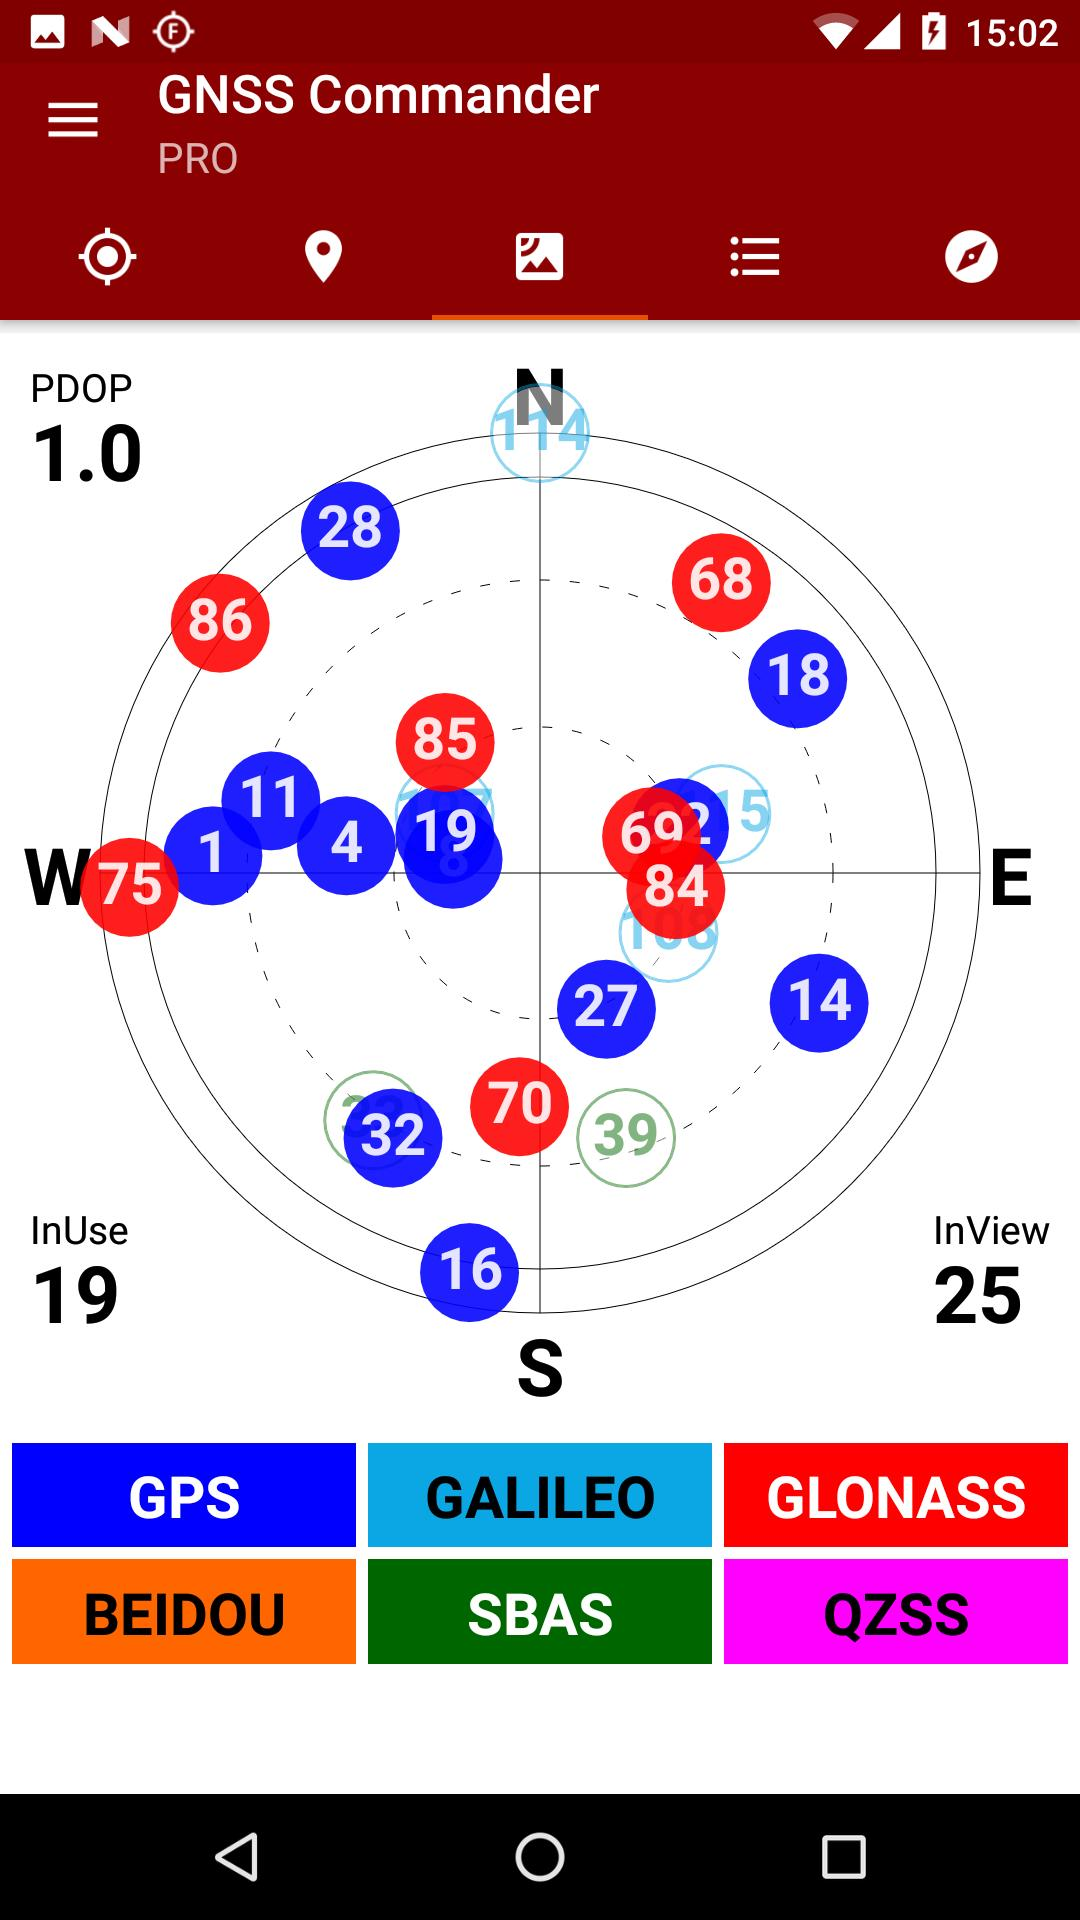 GNSS Commander for Android - APK Download